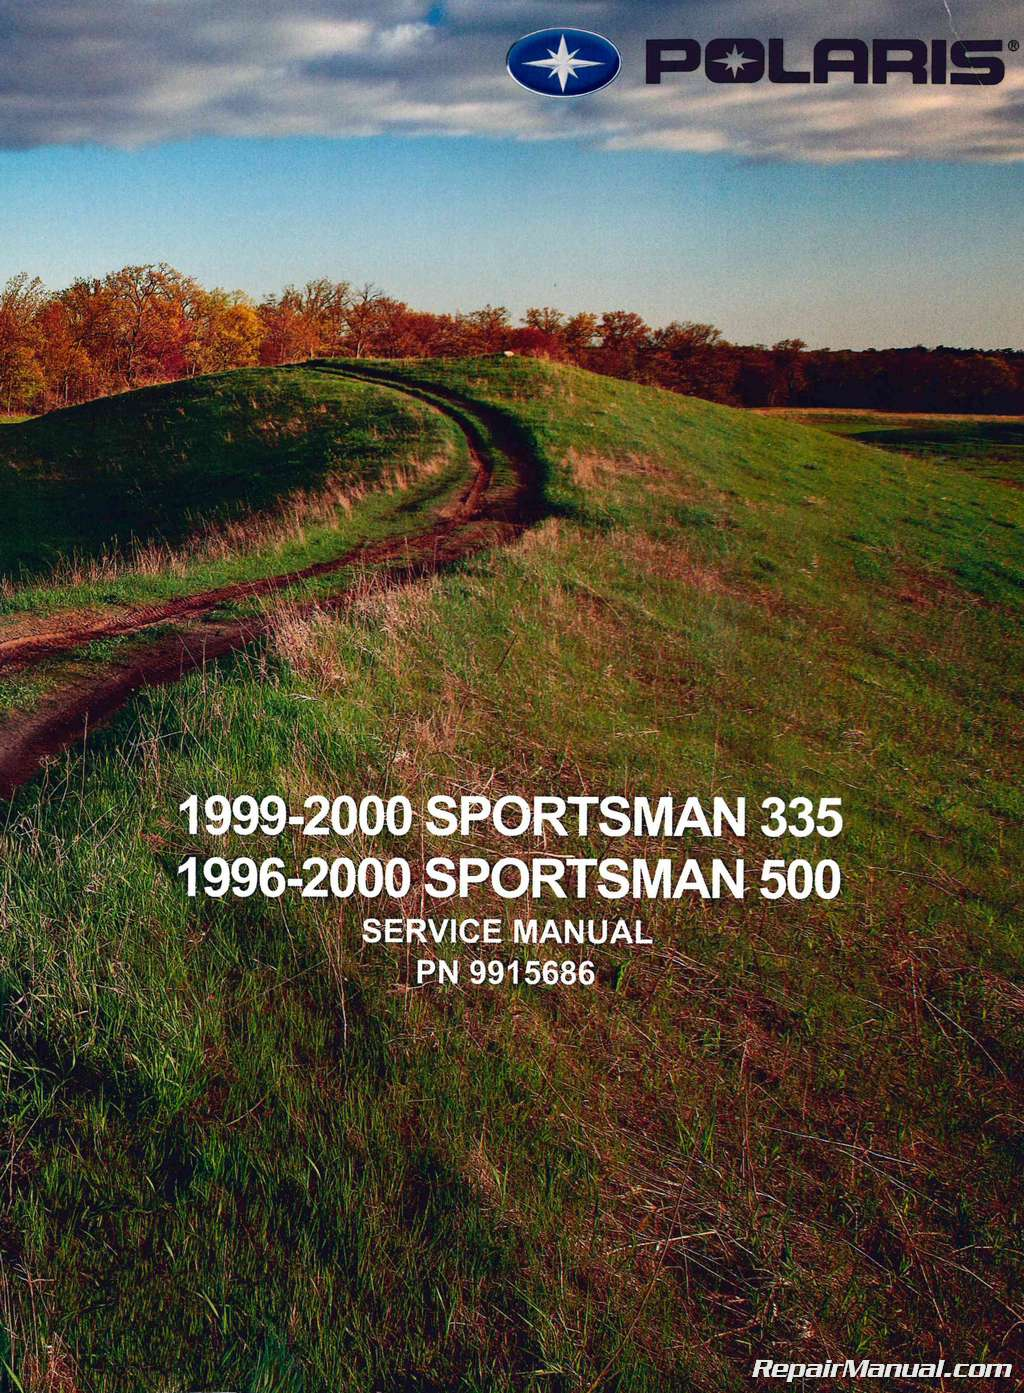 1996-2000 Polaris Sportsman 335 500 ATV Service Manual on